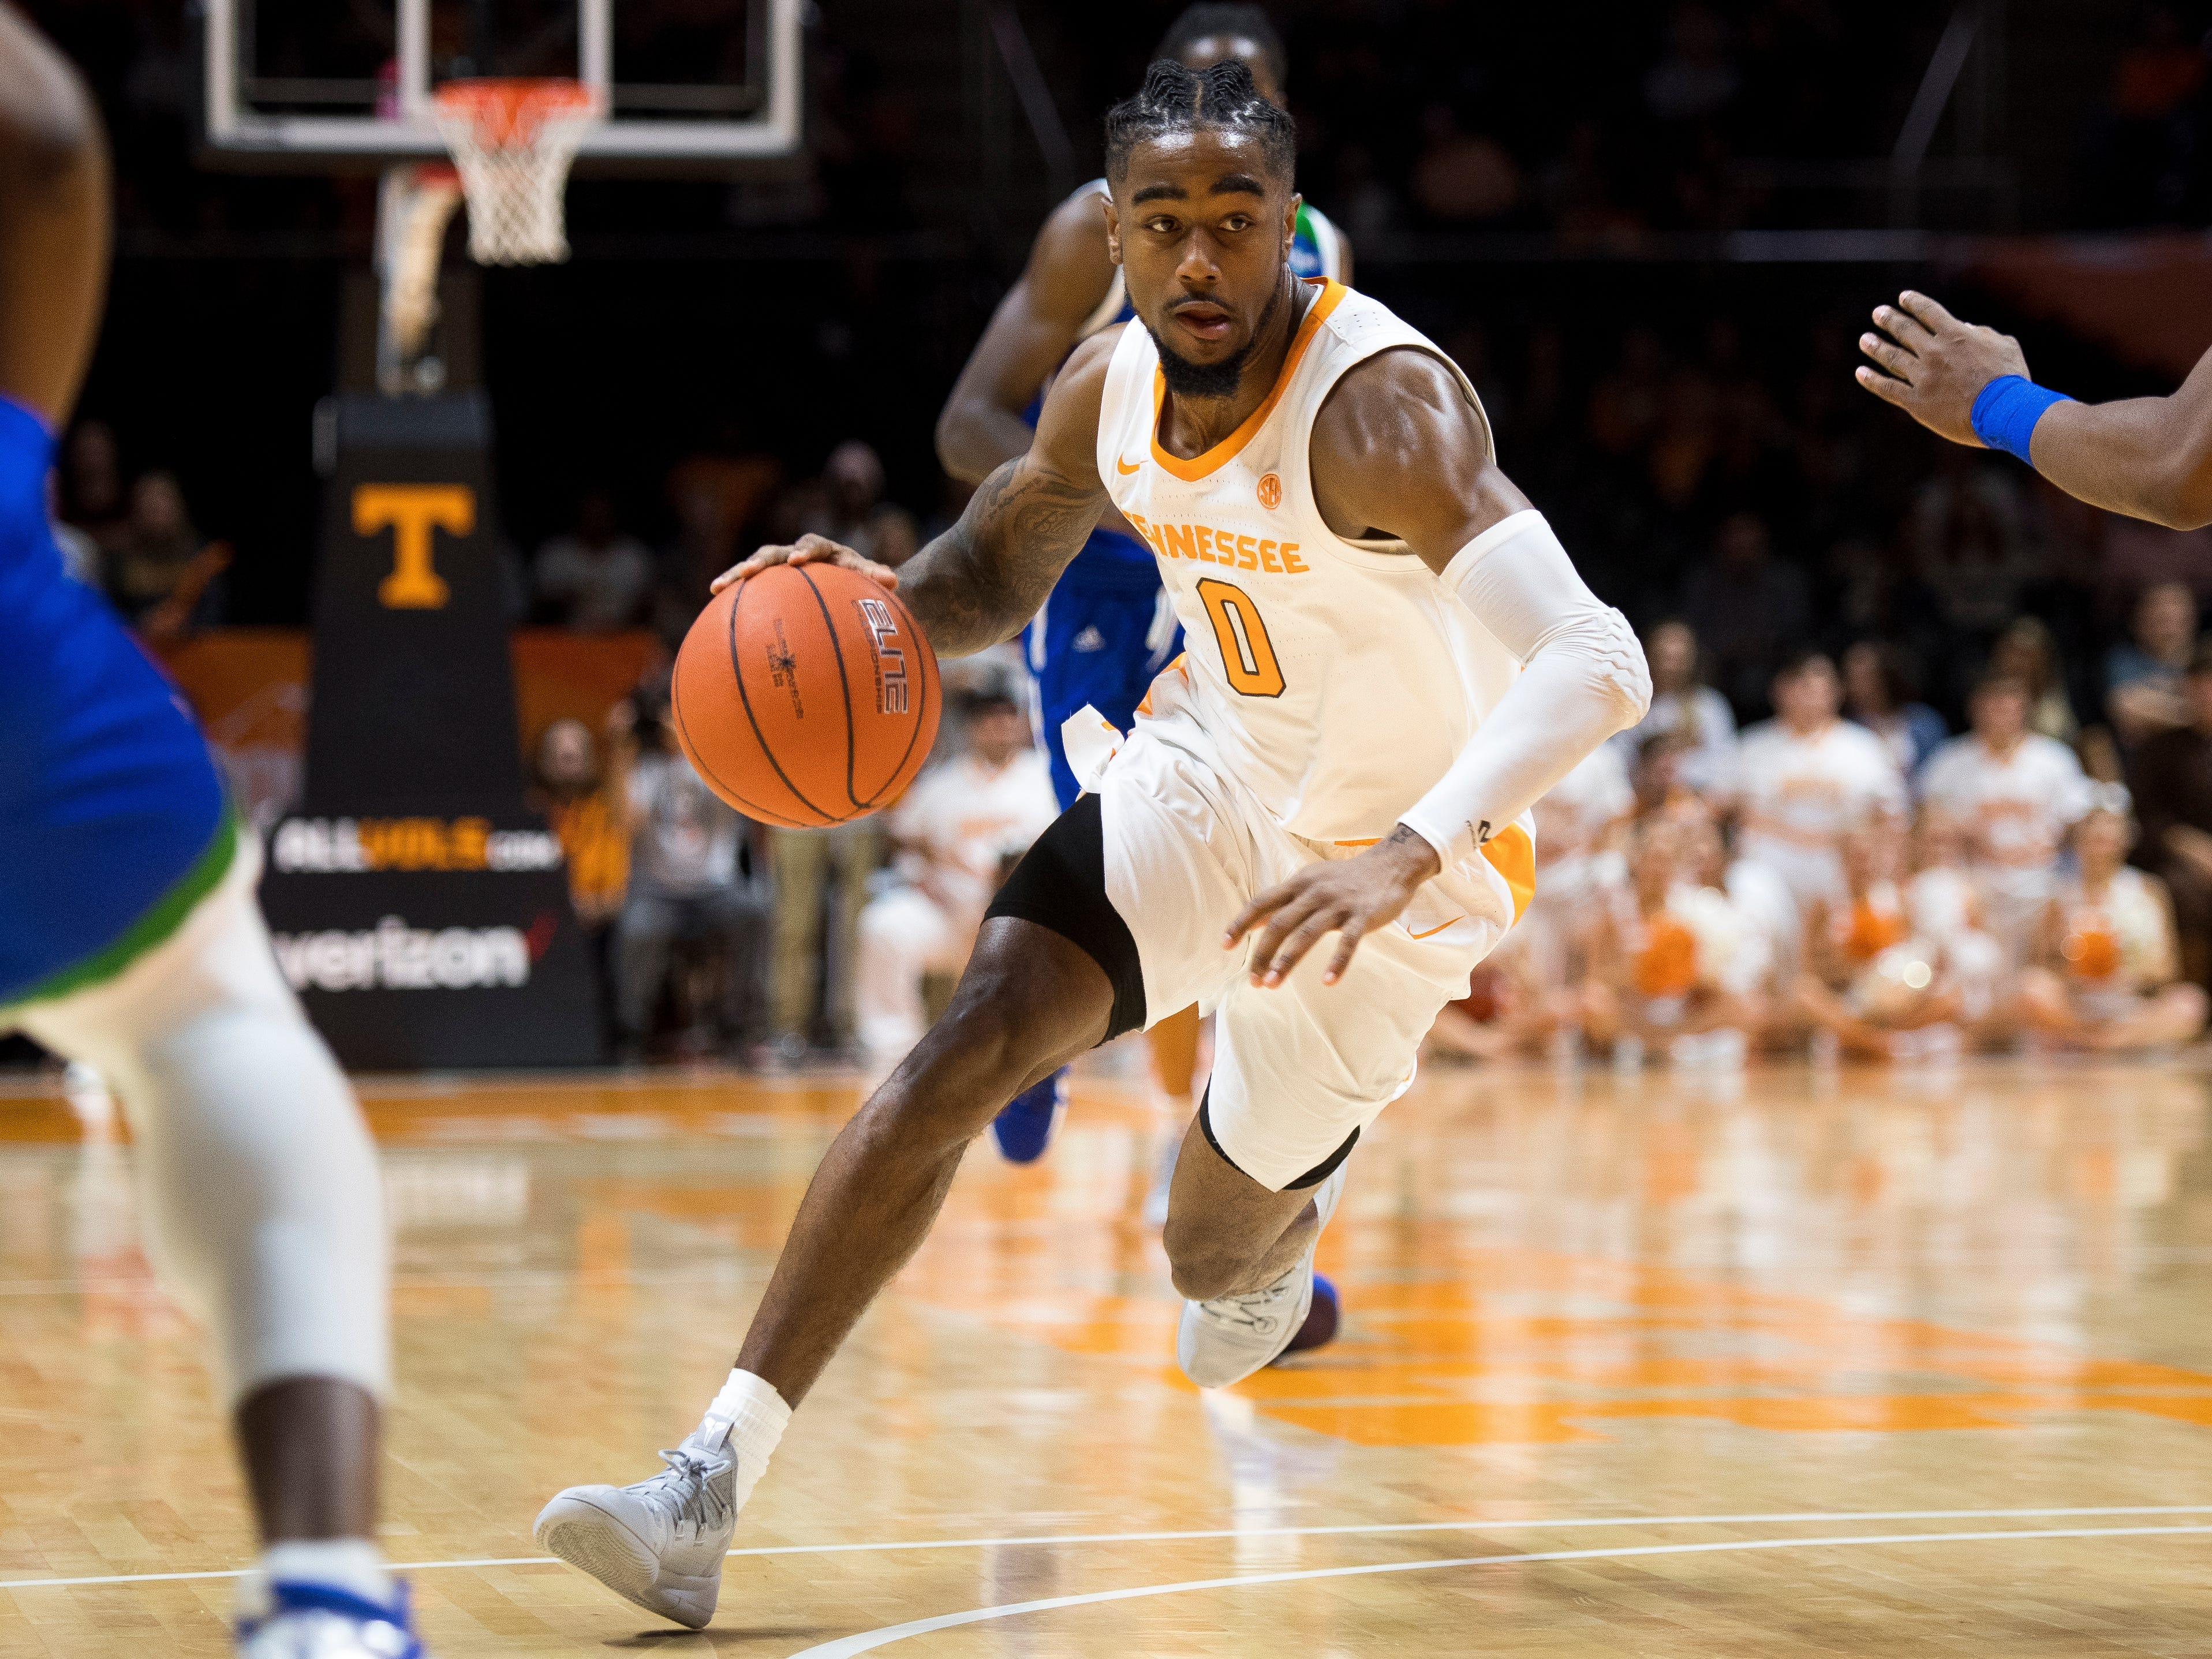 Tennessee guard Jordan Bone (0) drives down the court during the first half of the Tennessee Volunteers' home basketball game against the Texas A&M-Corpus Christi Islanders at Thompson-Boling Arena on Sunday, December 2, 2018.